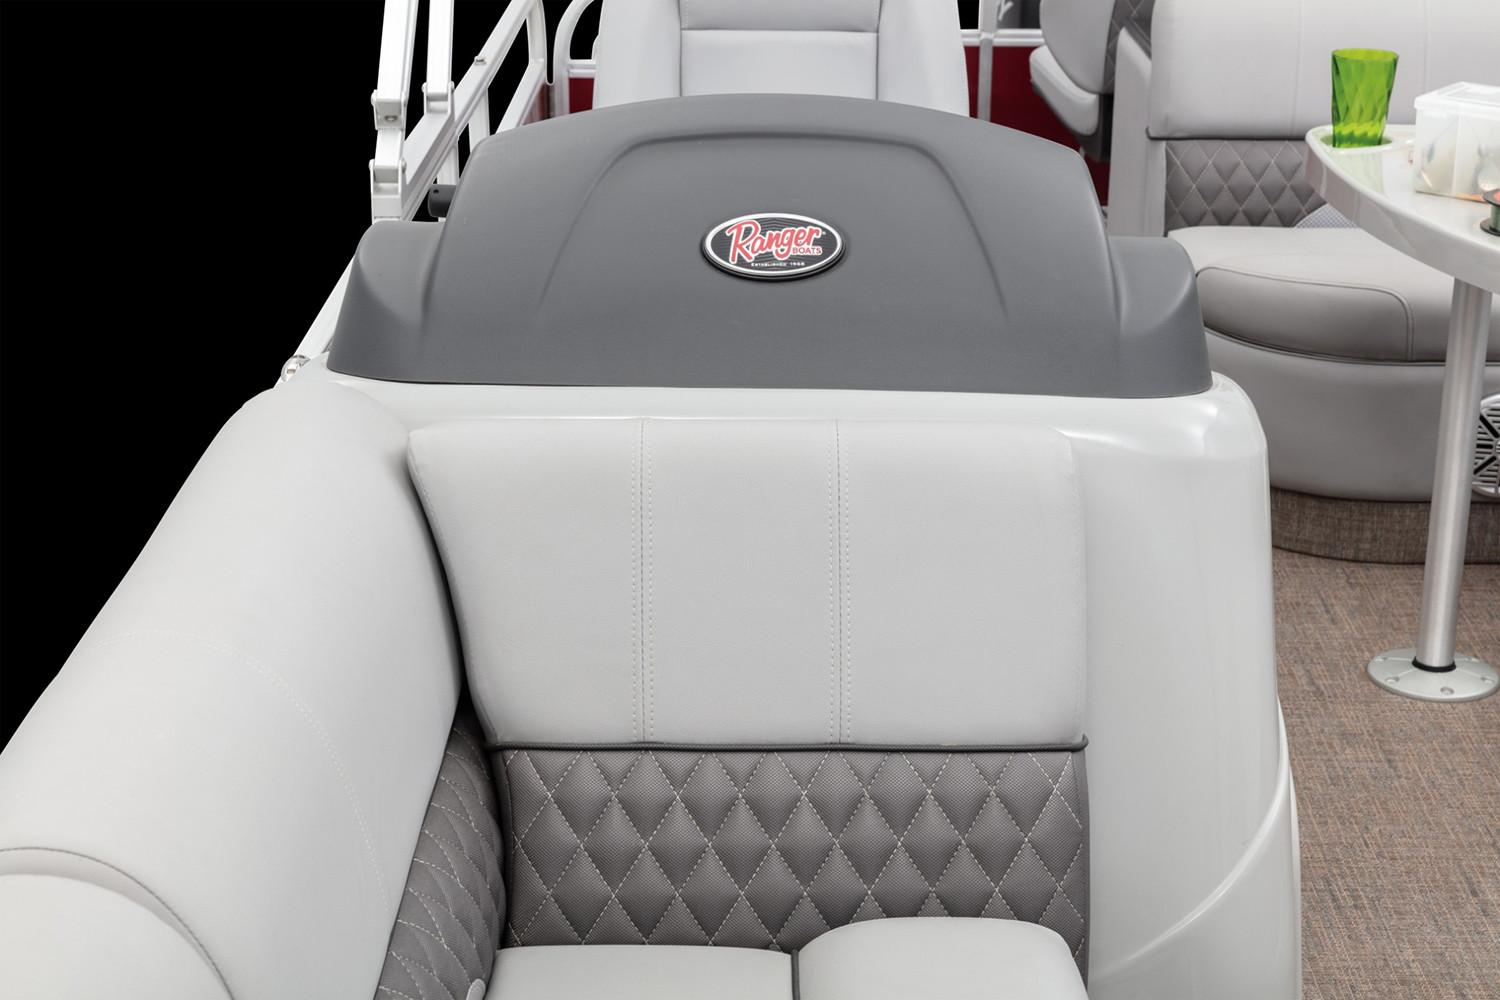 2019 Ranger Reata 220FC in Eastland, Texas - Photo 6